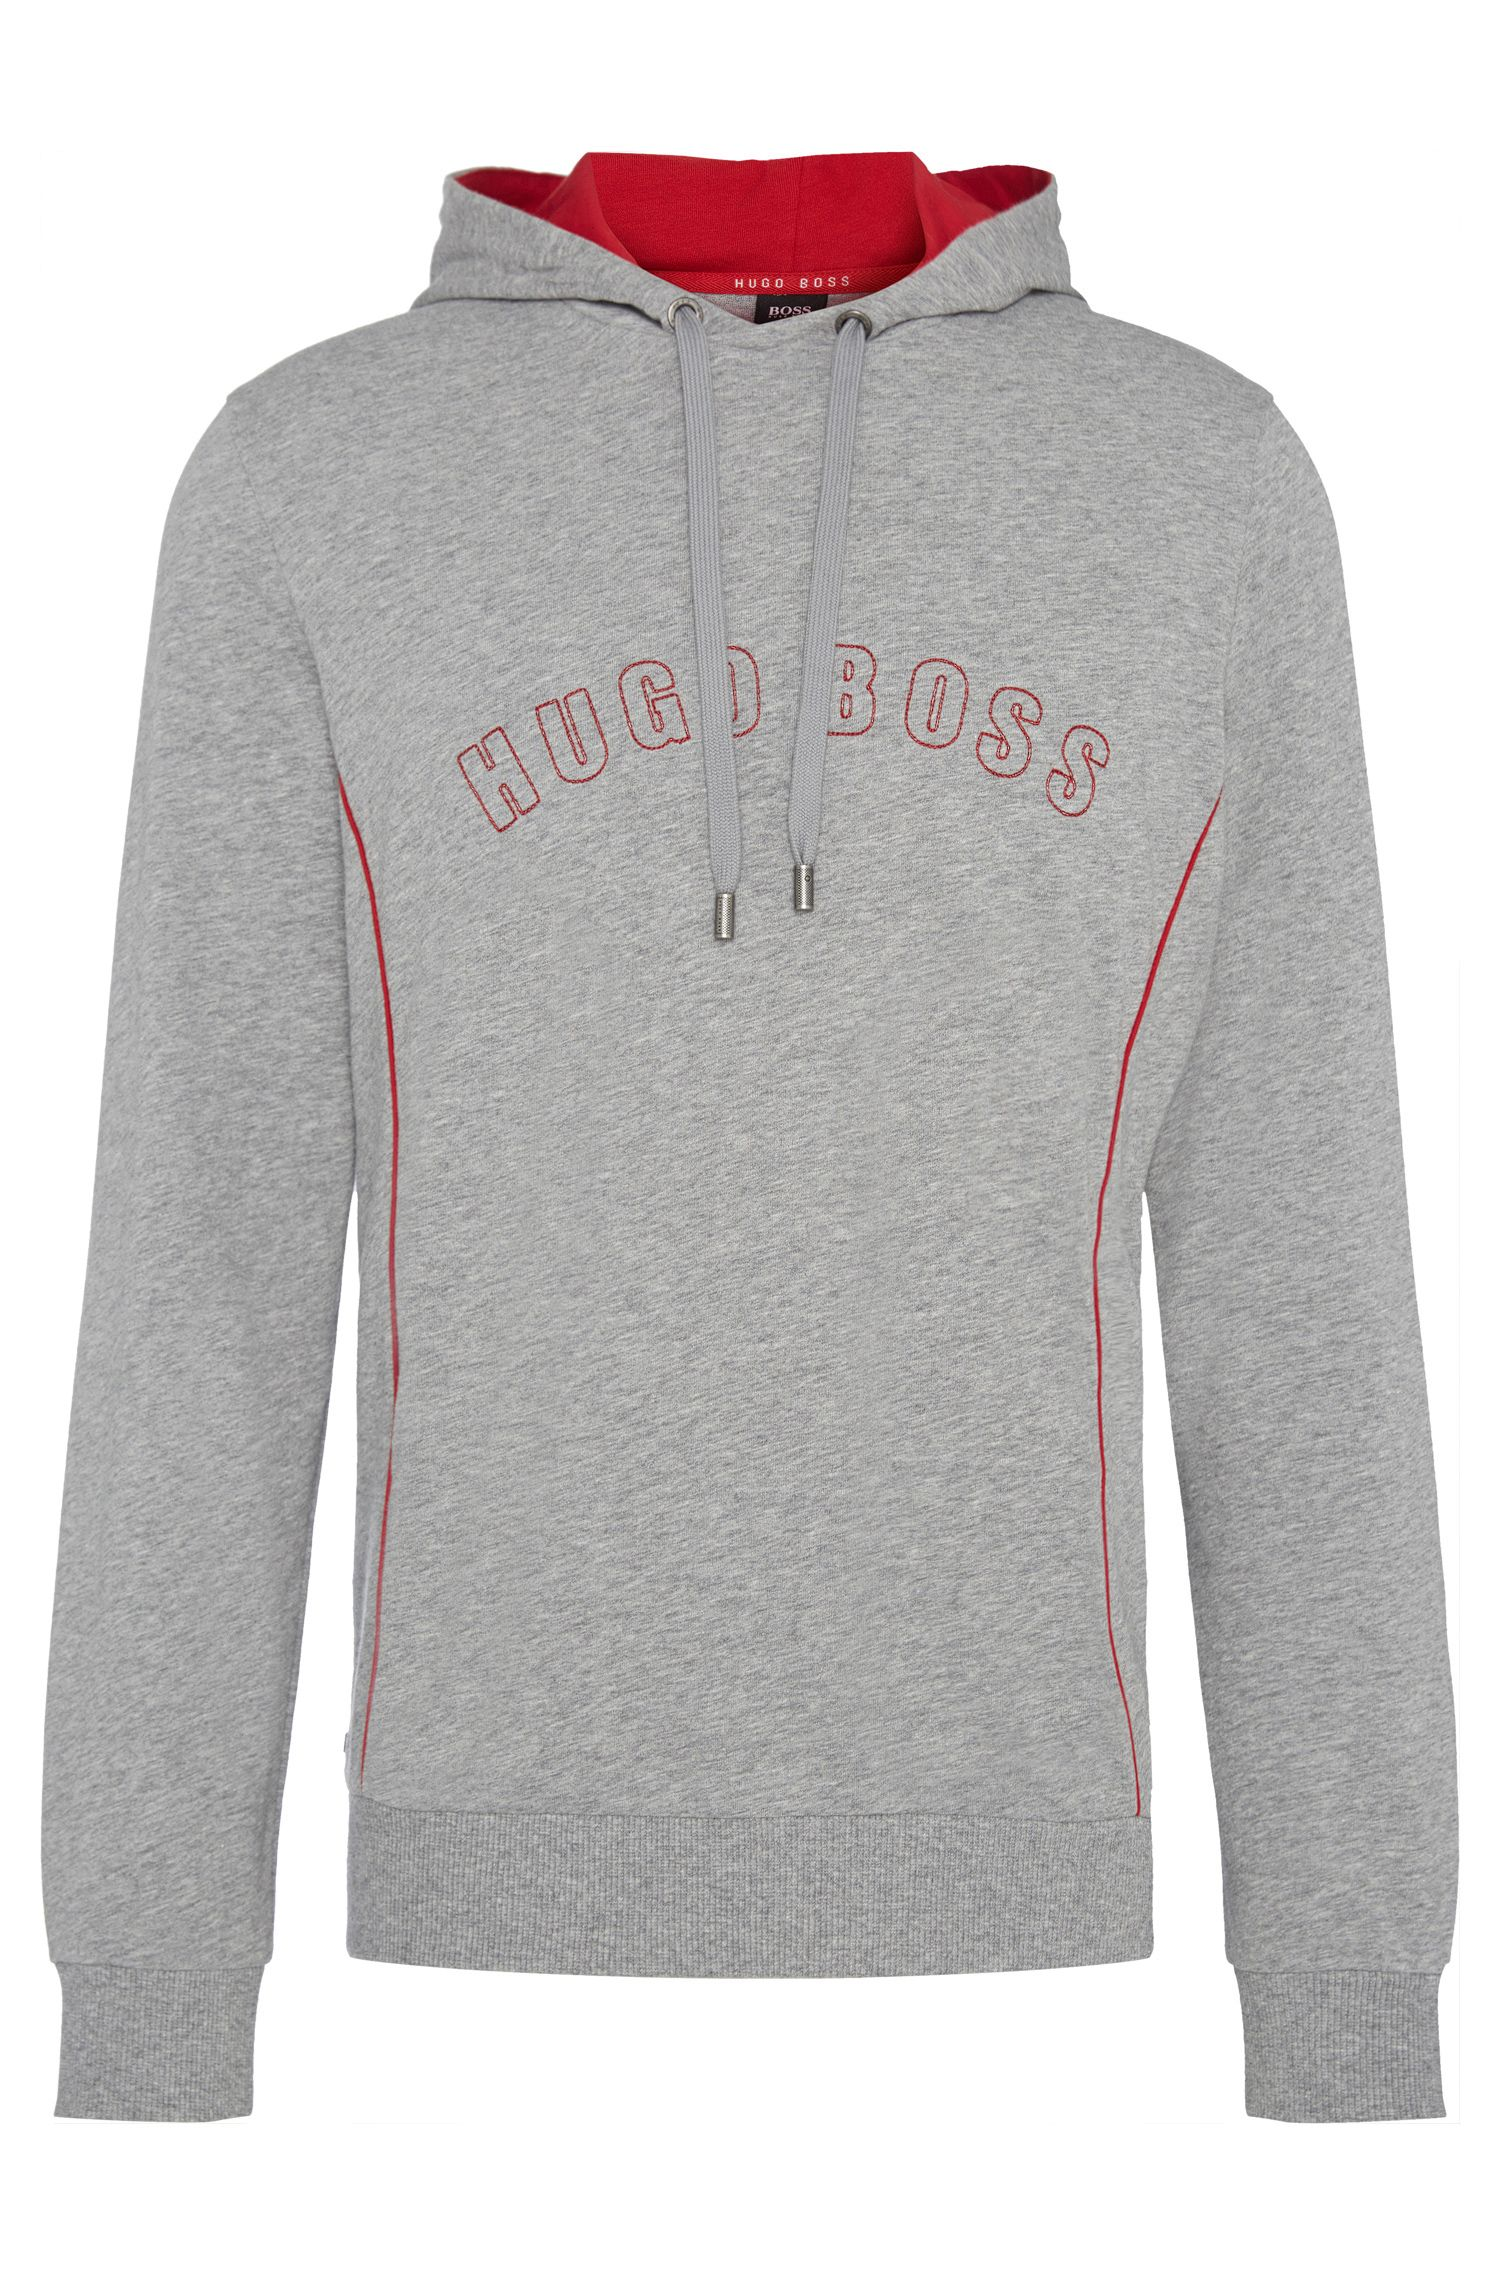 Regular-Fit Kapuzen-Sweatshirt aus Baumwolle: 'Hooded Sweatshirt'